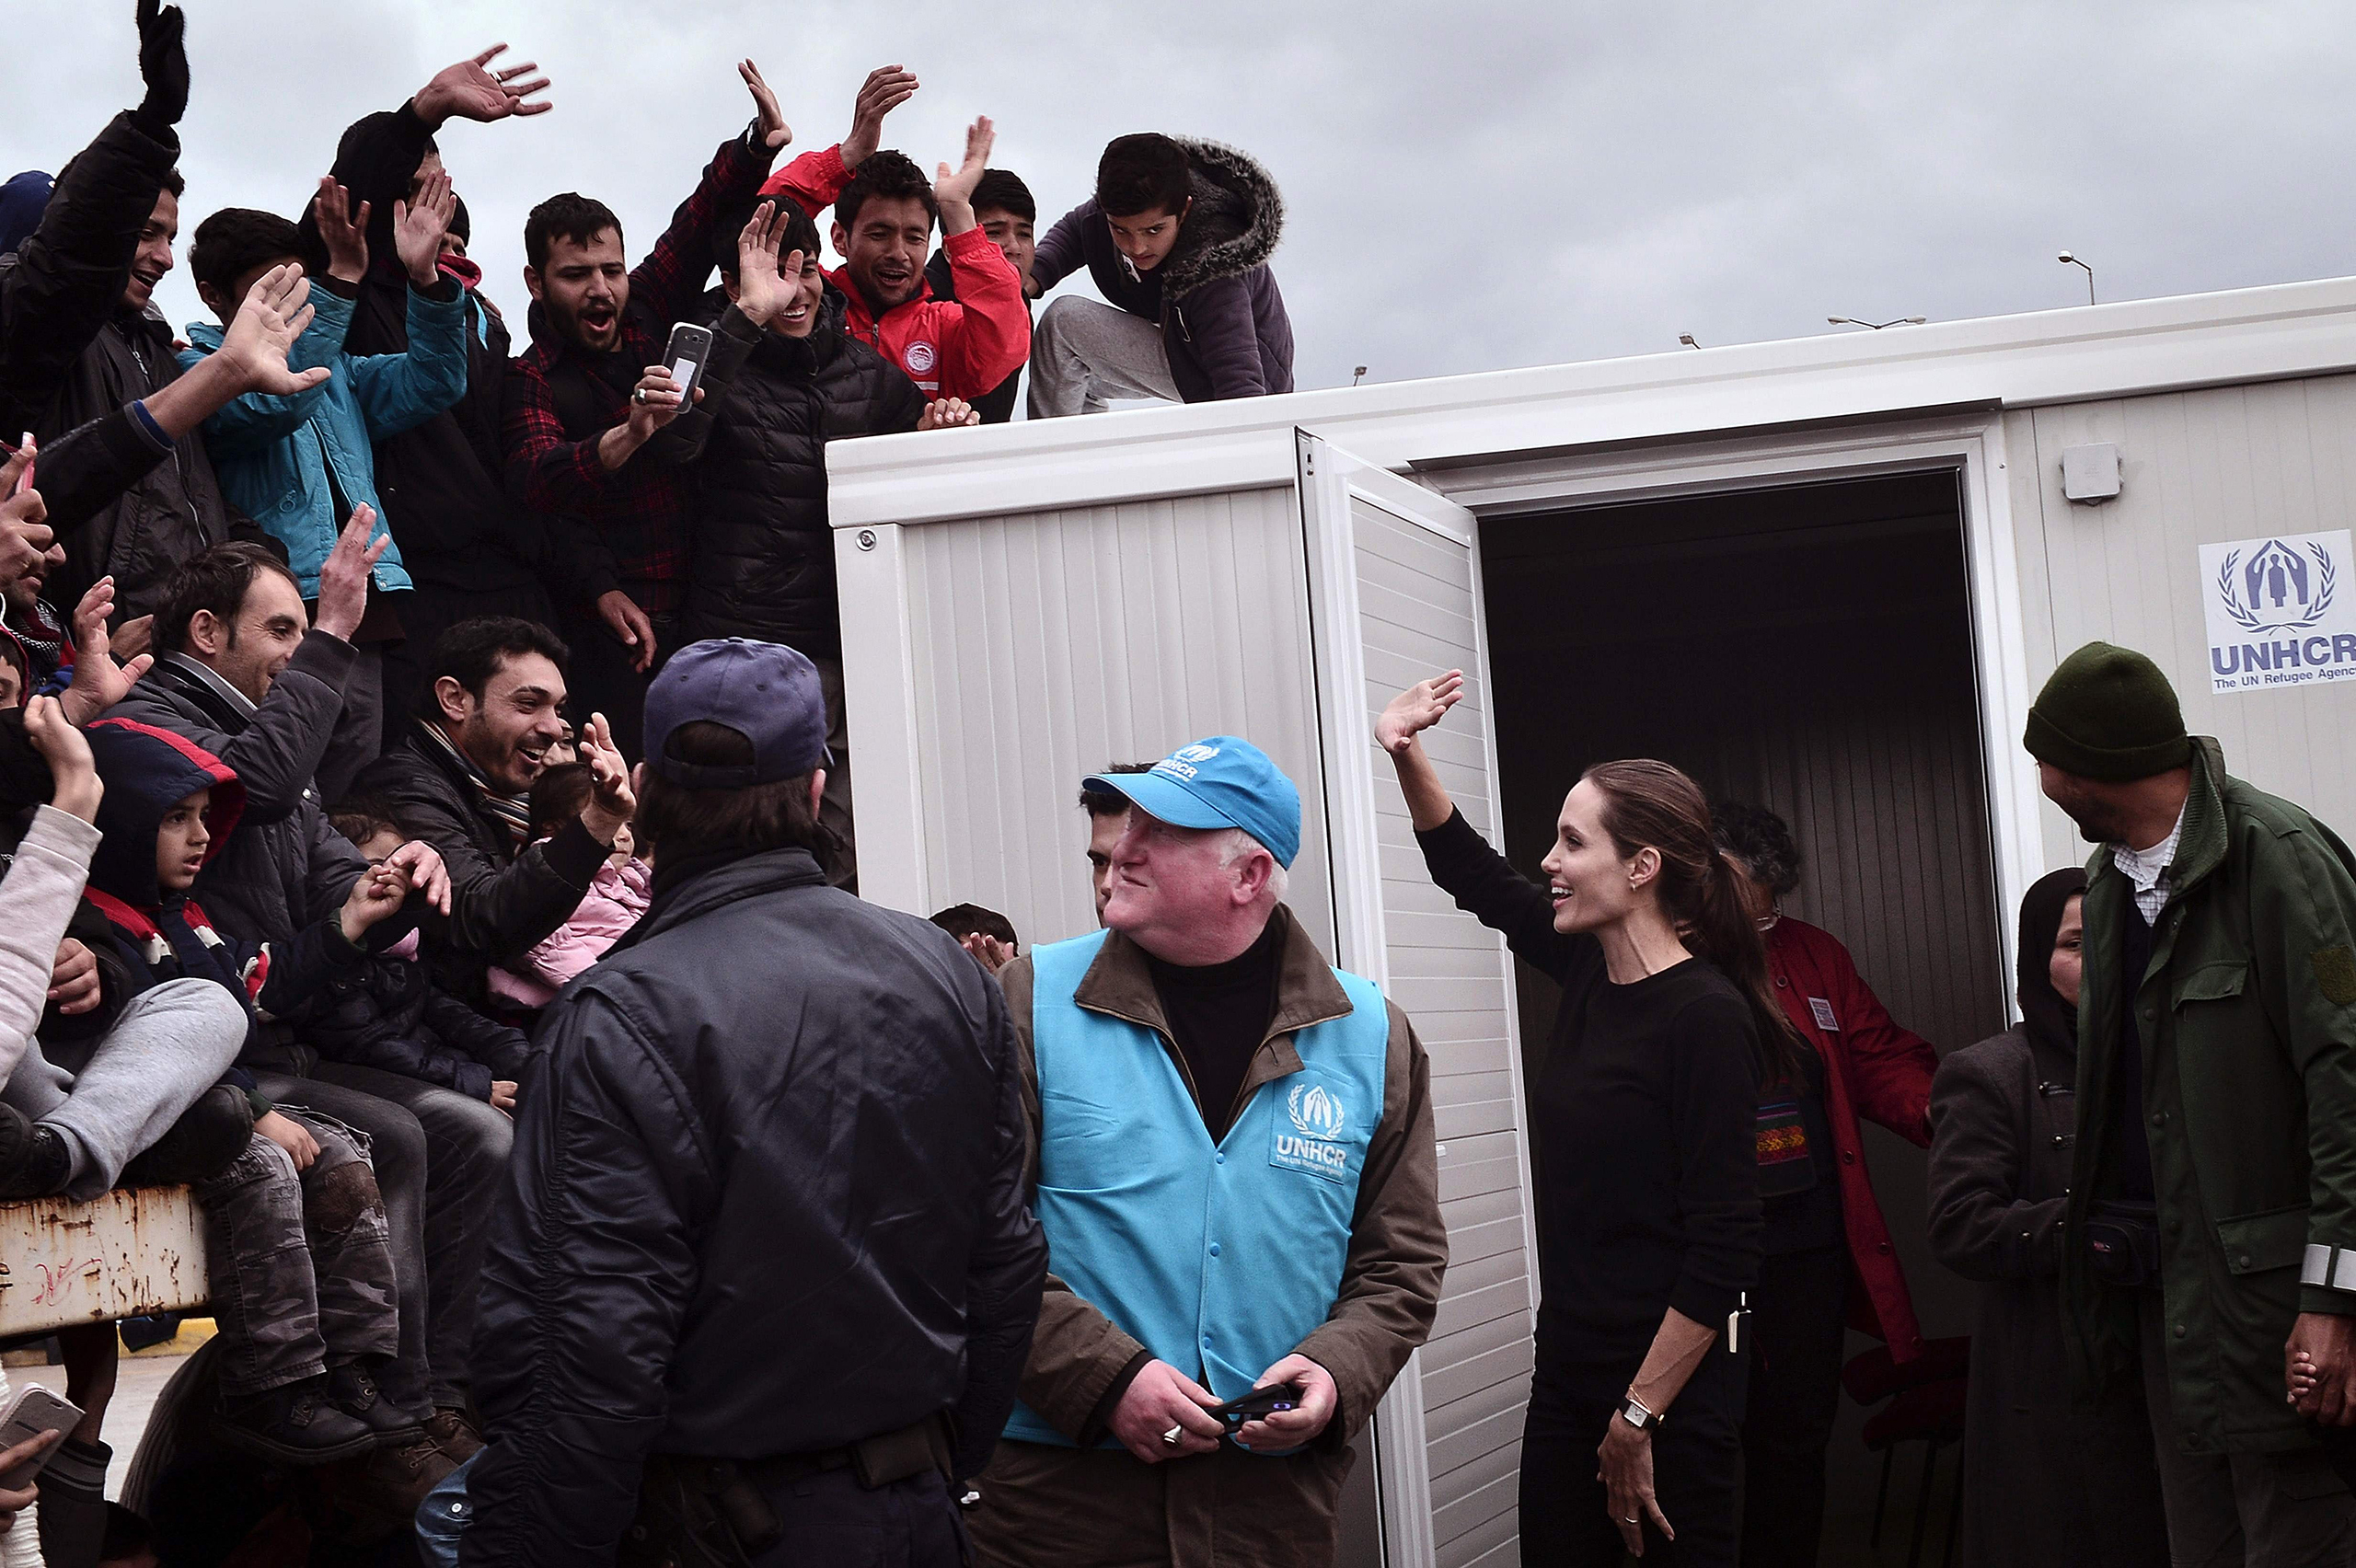 UNHCR's Goodwill Ambassador Angelina Jolie Pitt greets refugees and migrants during her visit to the port of Piraeus, Greece, March 16, 2016. She urged 